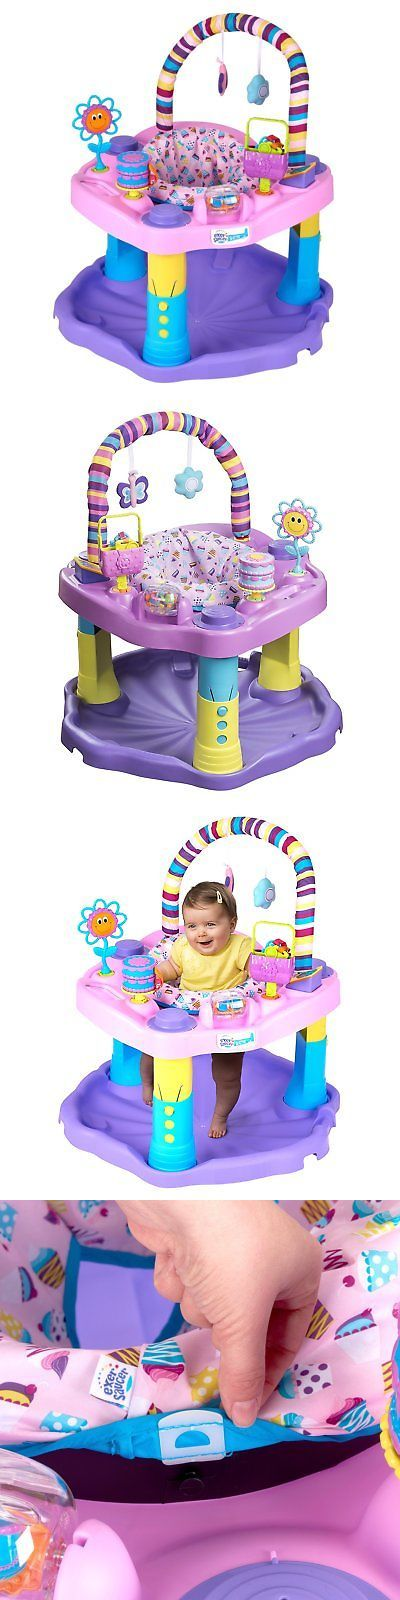 8a8b73468 Exersaucer Baby Bouncer Jumper Learning Activity Center Girl Child ...